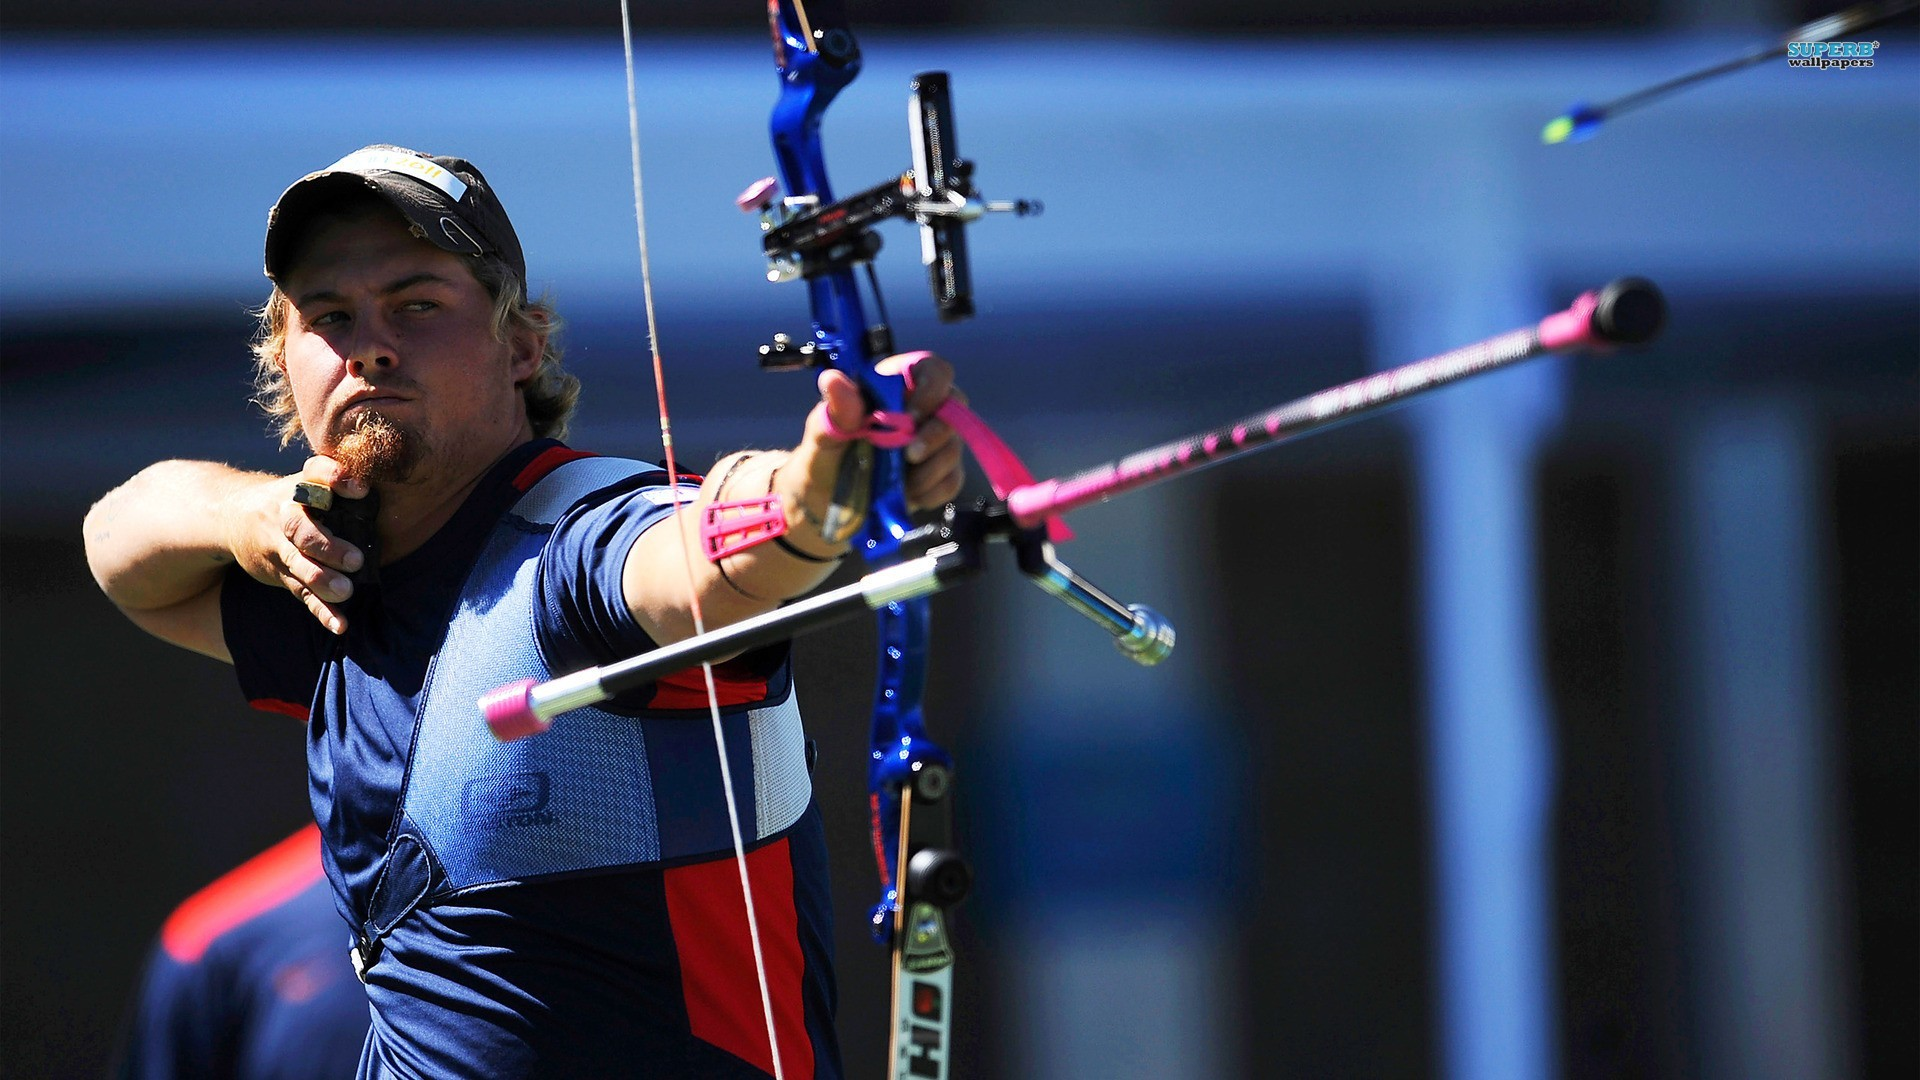 Res: 1920x1080, Archery Wallpaper For Iphone #3Jy